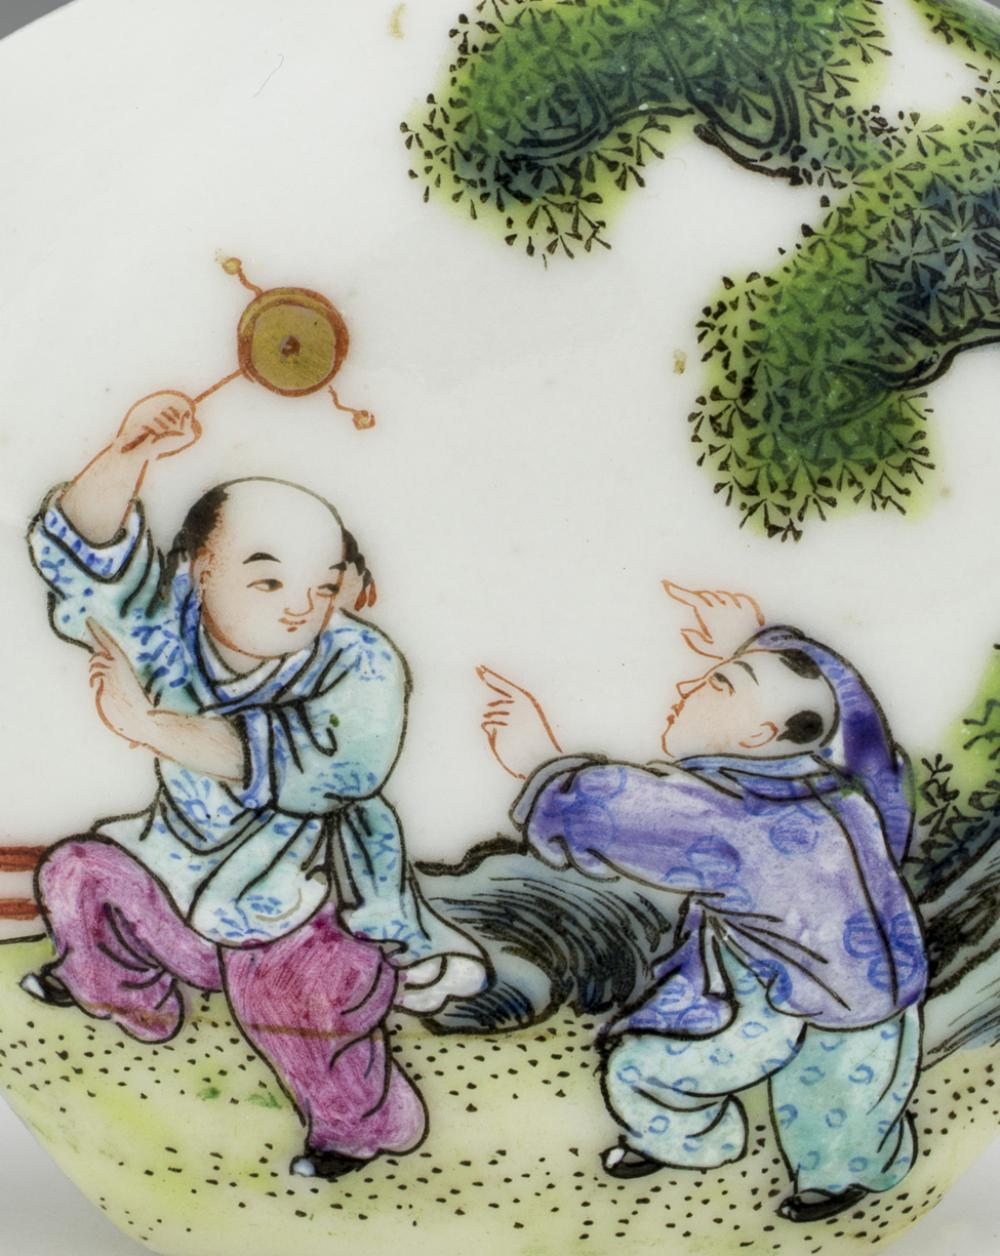 Maker Unknown (Chinese), Snuff bottle with children in a garden, late 19th century (Qing dynasty)